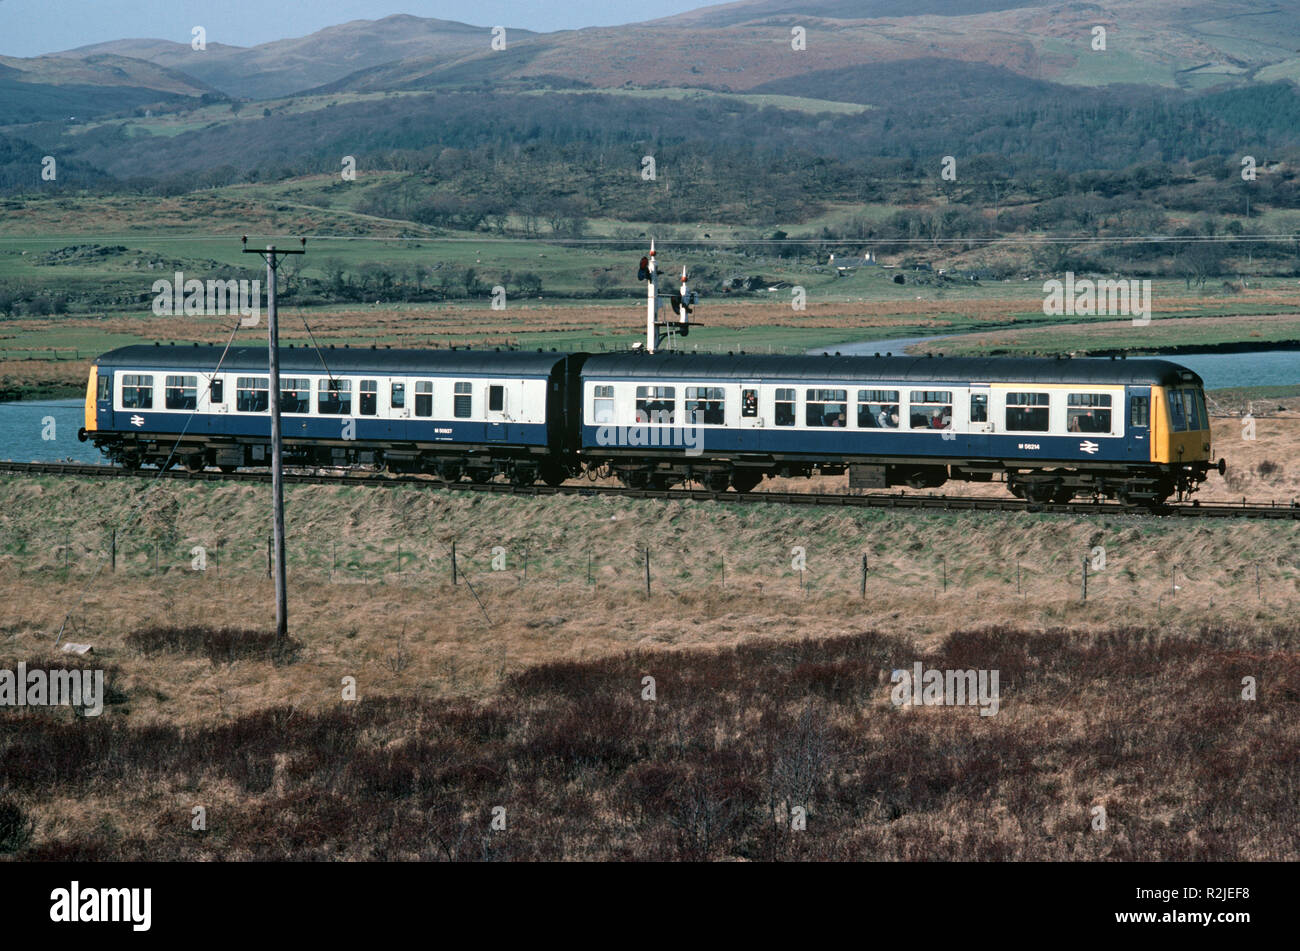 British Rail Diesel Multiple Unit, DMU, train on River Dovey marshlands, on the Dovey Junction to Pwllheli Cambrian Coast railway line, Merionethshire County, Wales, Great Britain - Stock Image